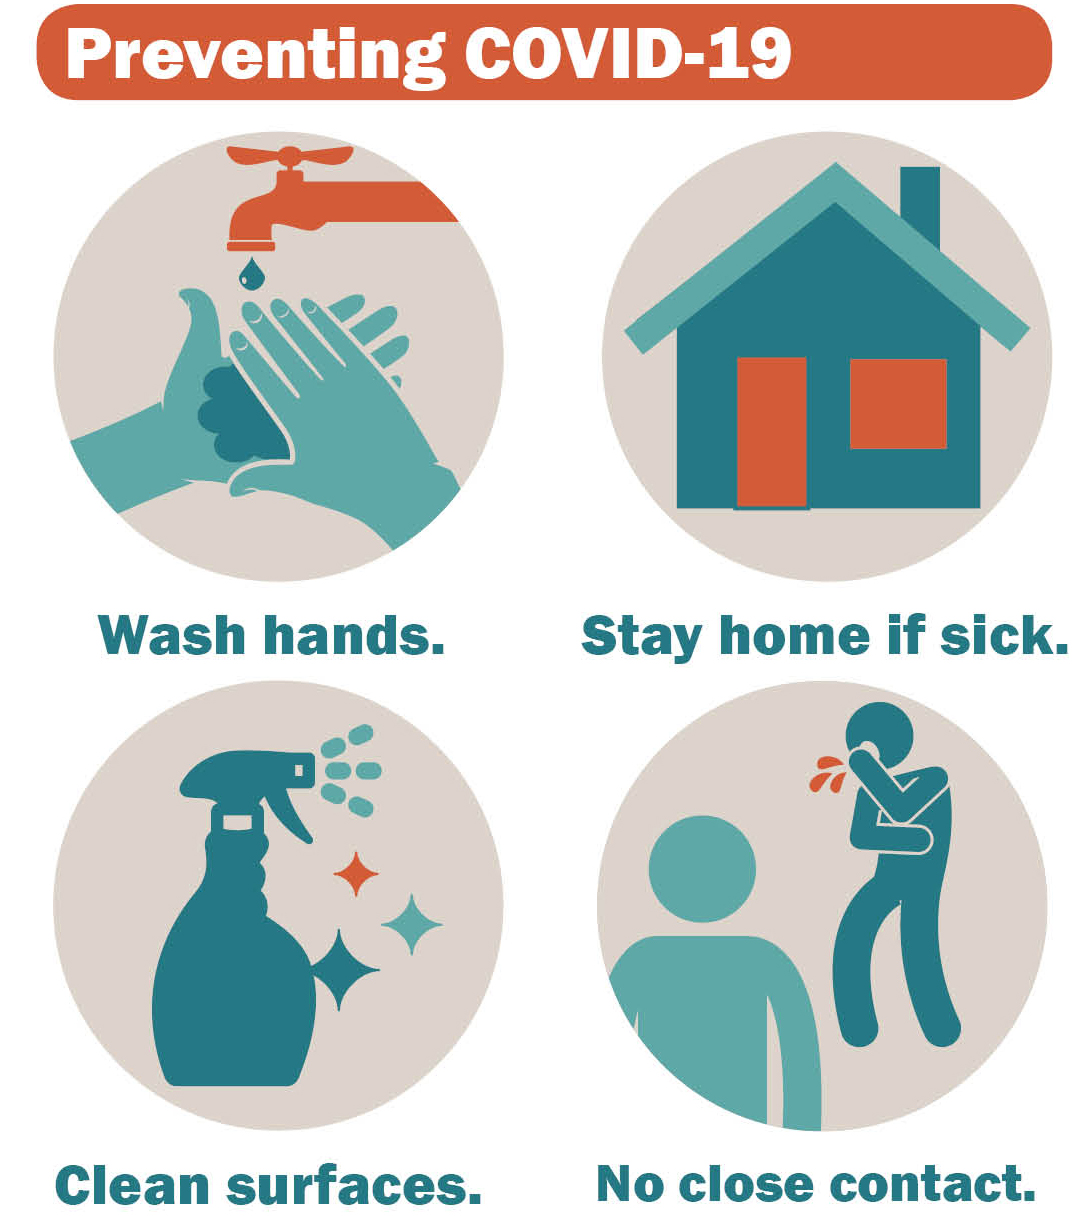 Prevention: Wash hands. Stay home if sick. Clean surfaces. No close contact.